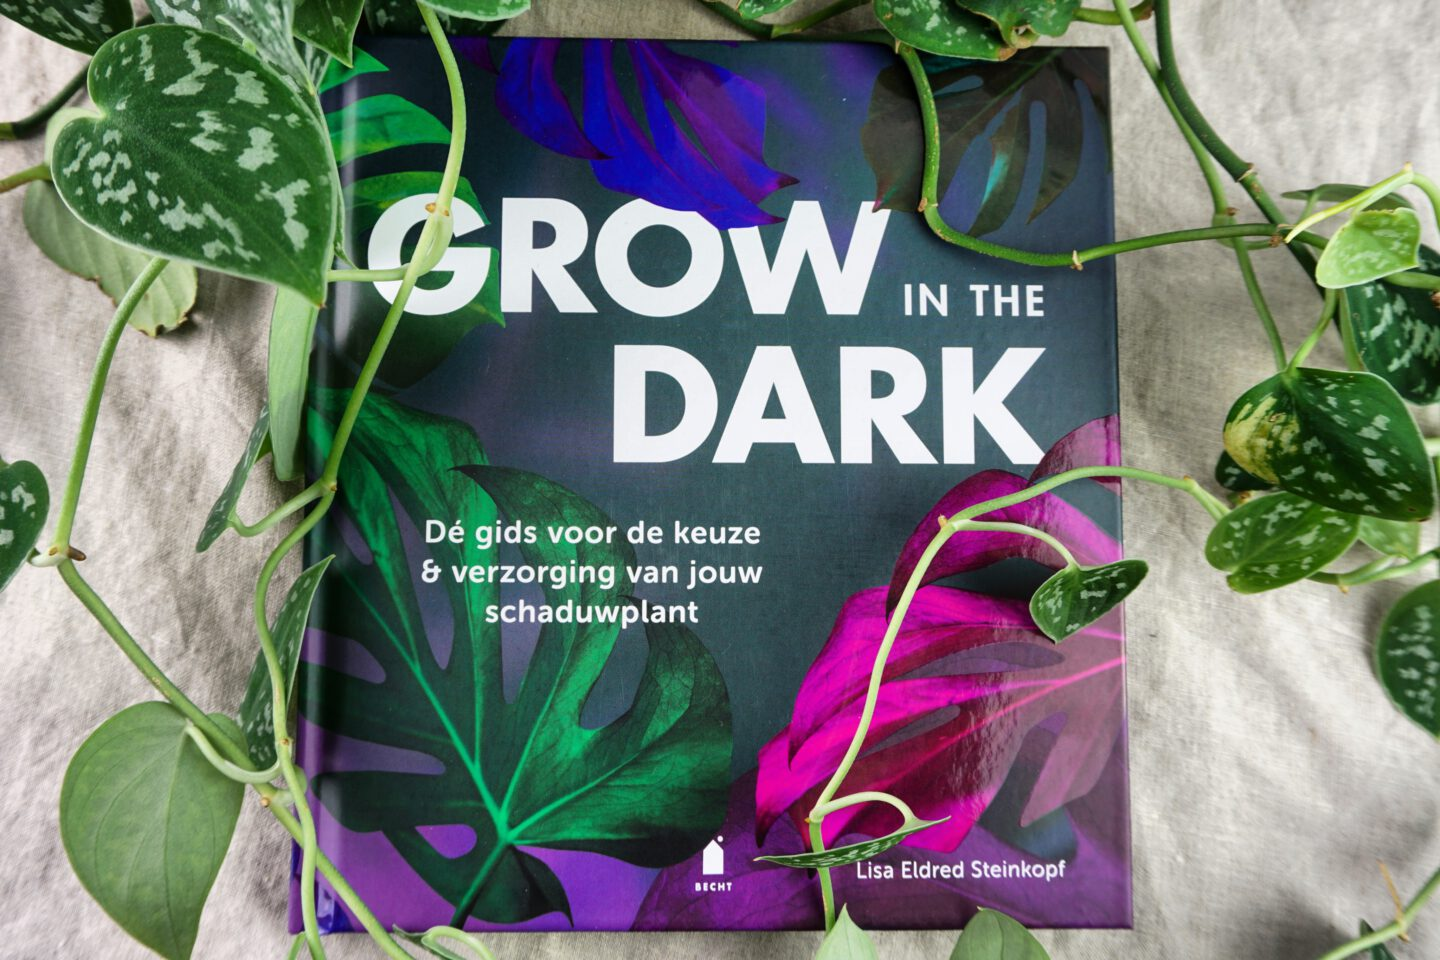 Boekrecensie | Grow in the dark – Lisa Eldred Steinkopf